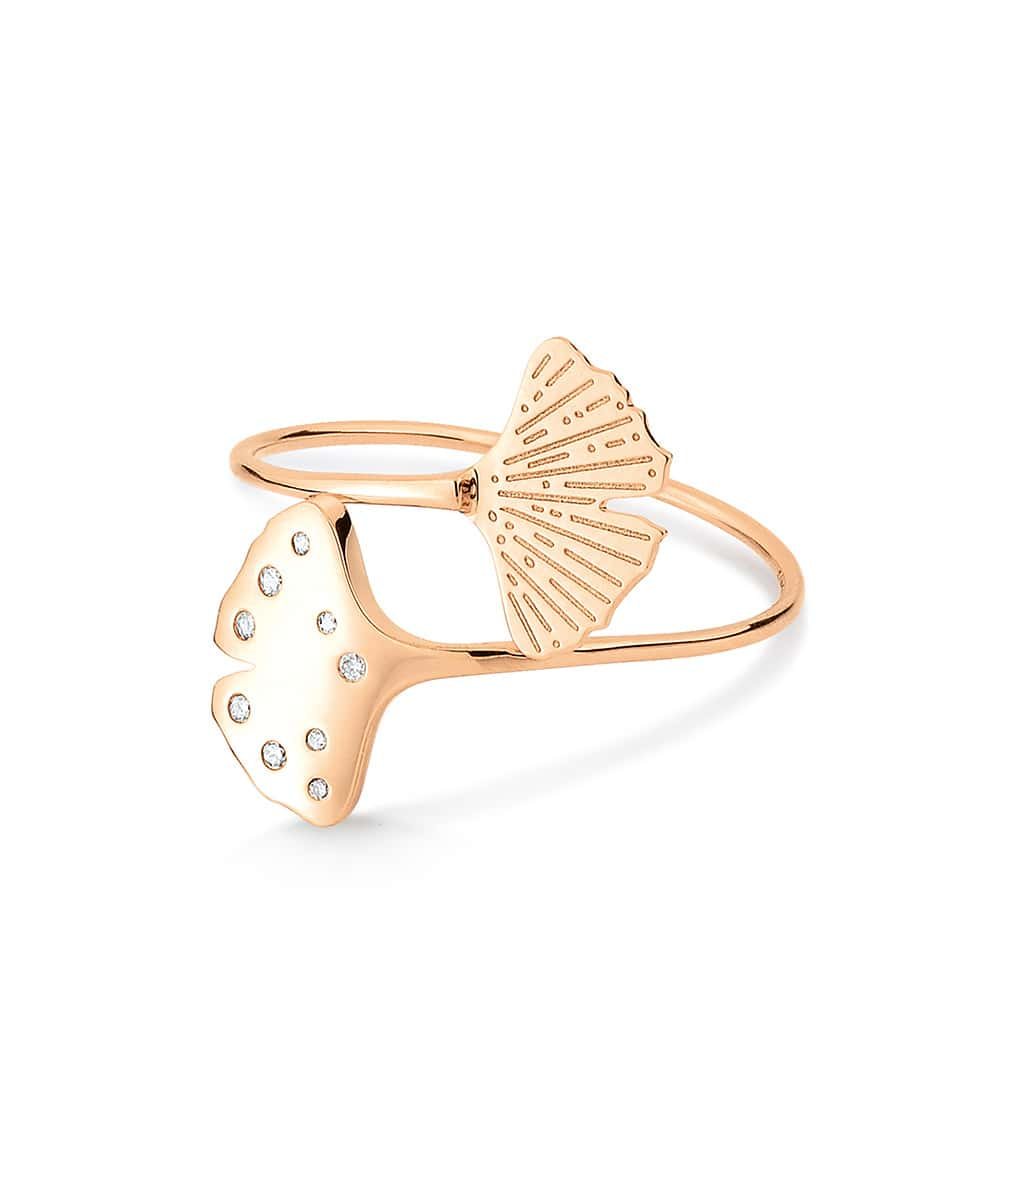 GINETTE_NY - Bague Gingko Double Diamants Or Rose